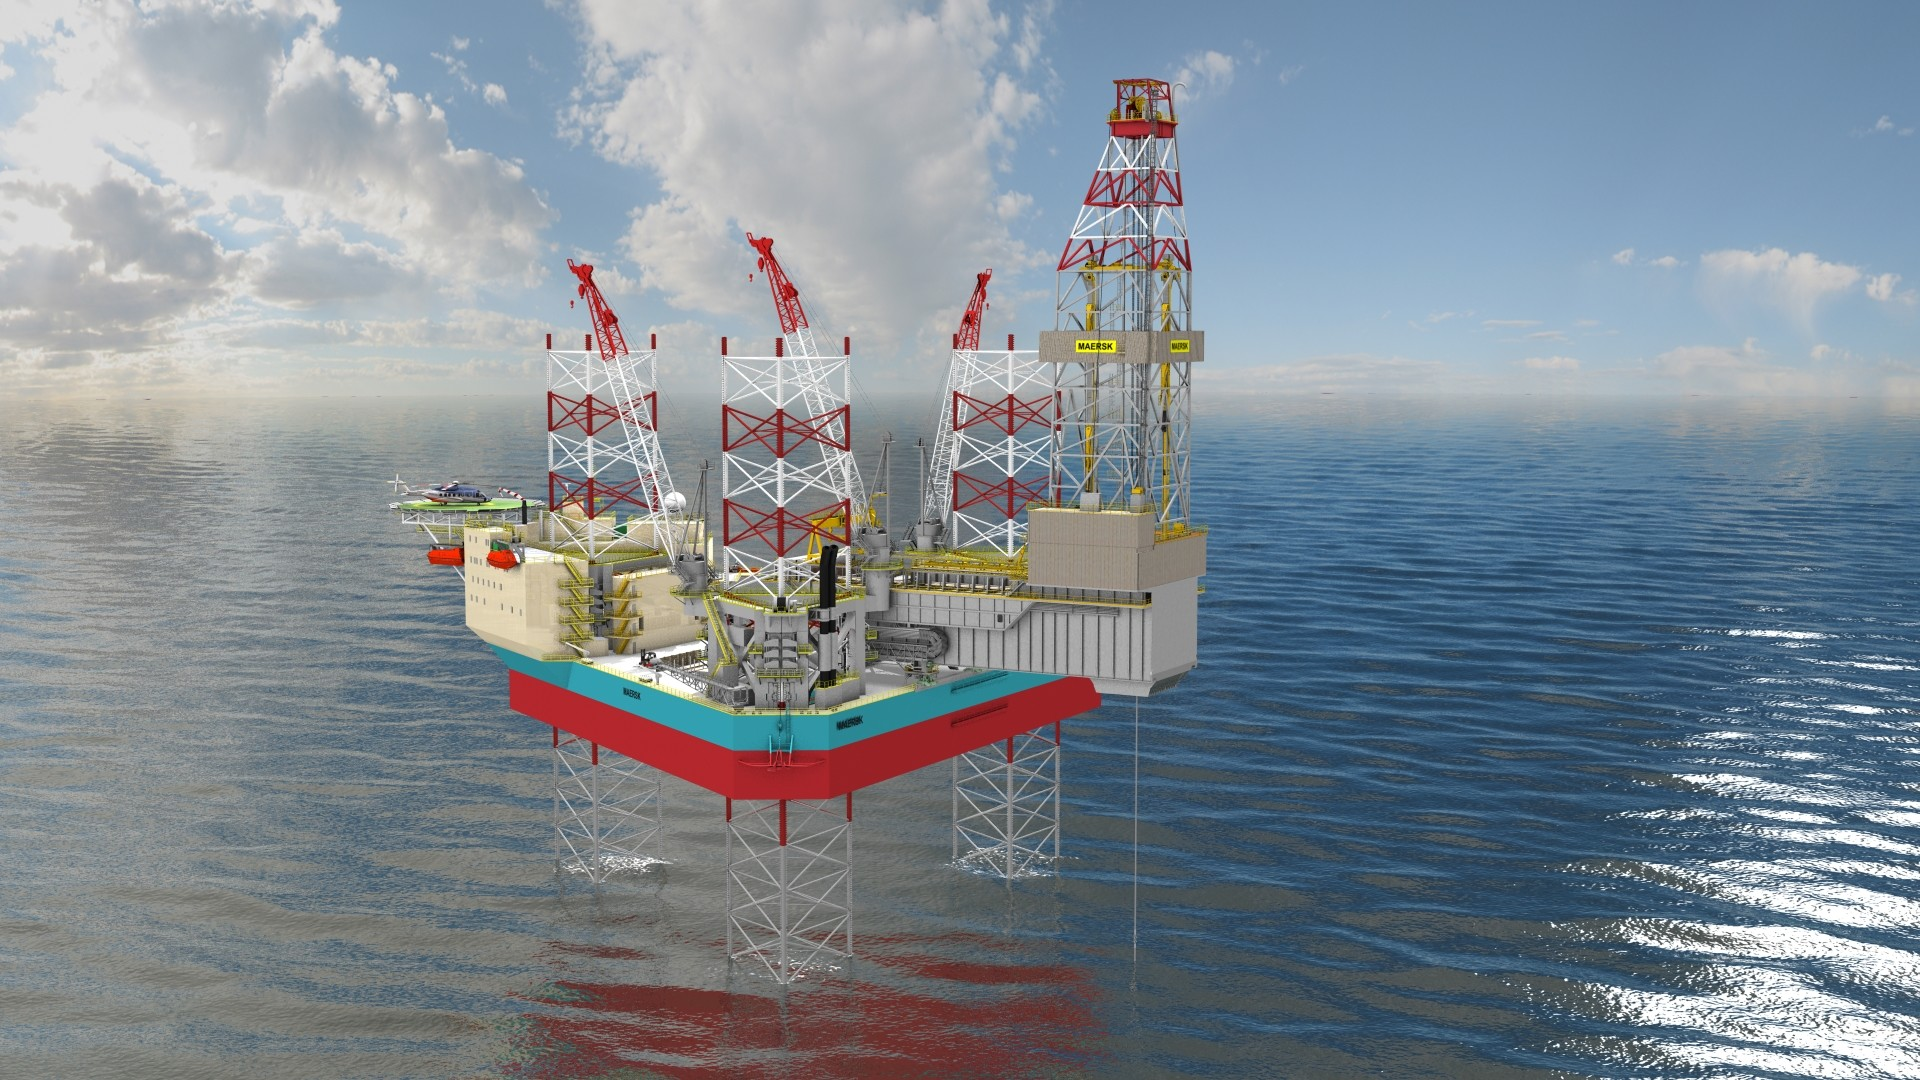 1920x1080 Norway: Maersk Drilling Receives LoA for Jack-Up Rig XL Enhanced 2